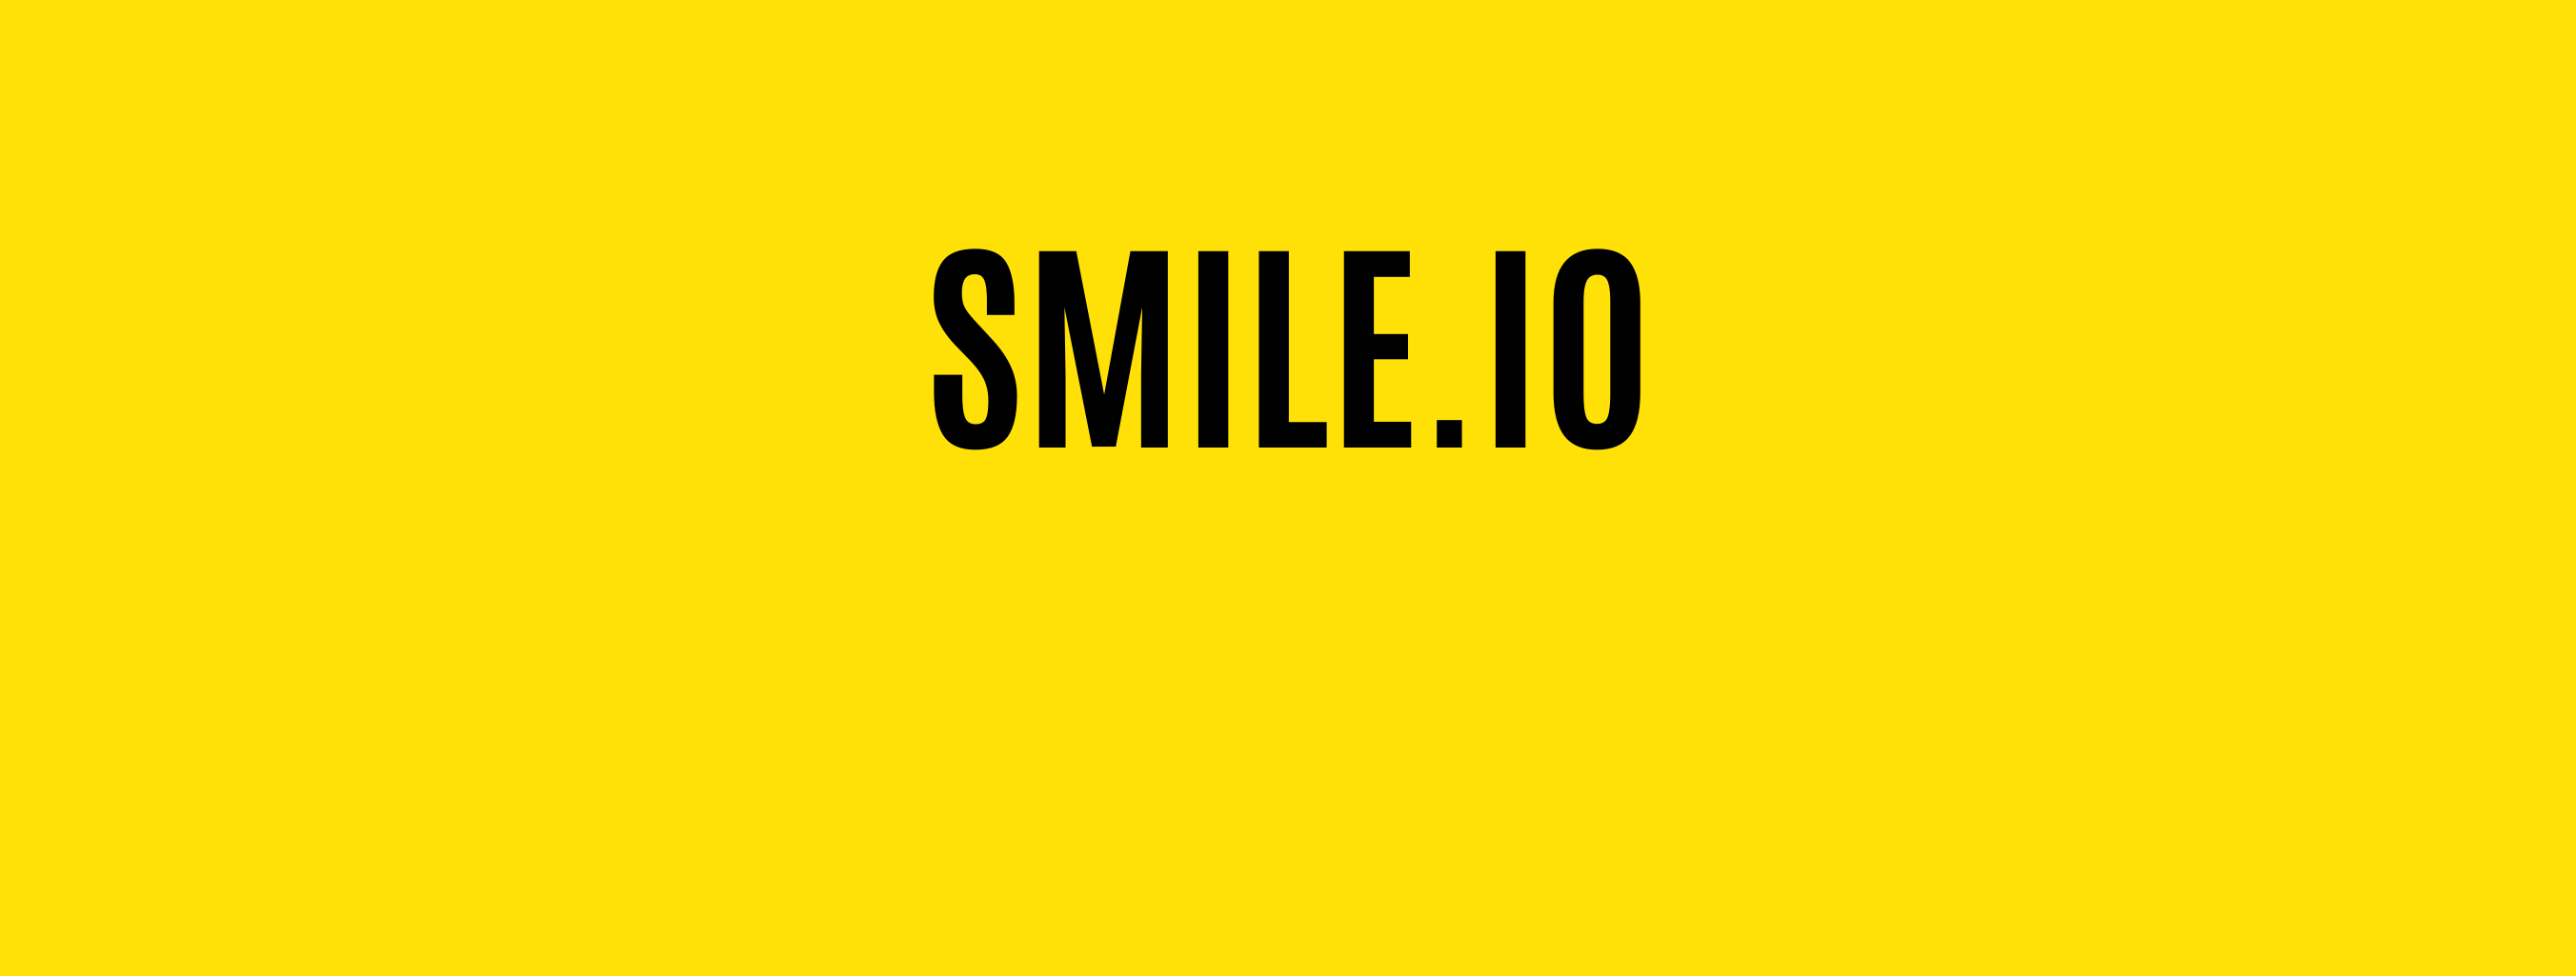 Smile Customer Acquisition Software